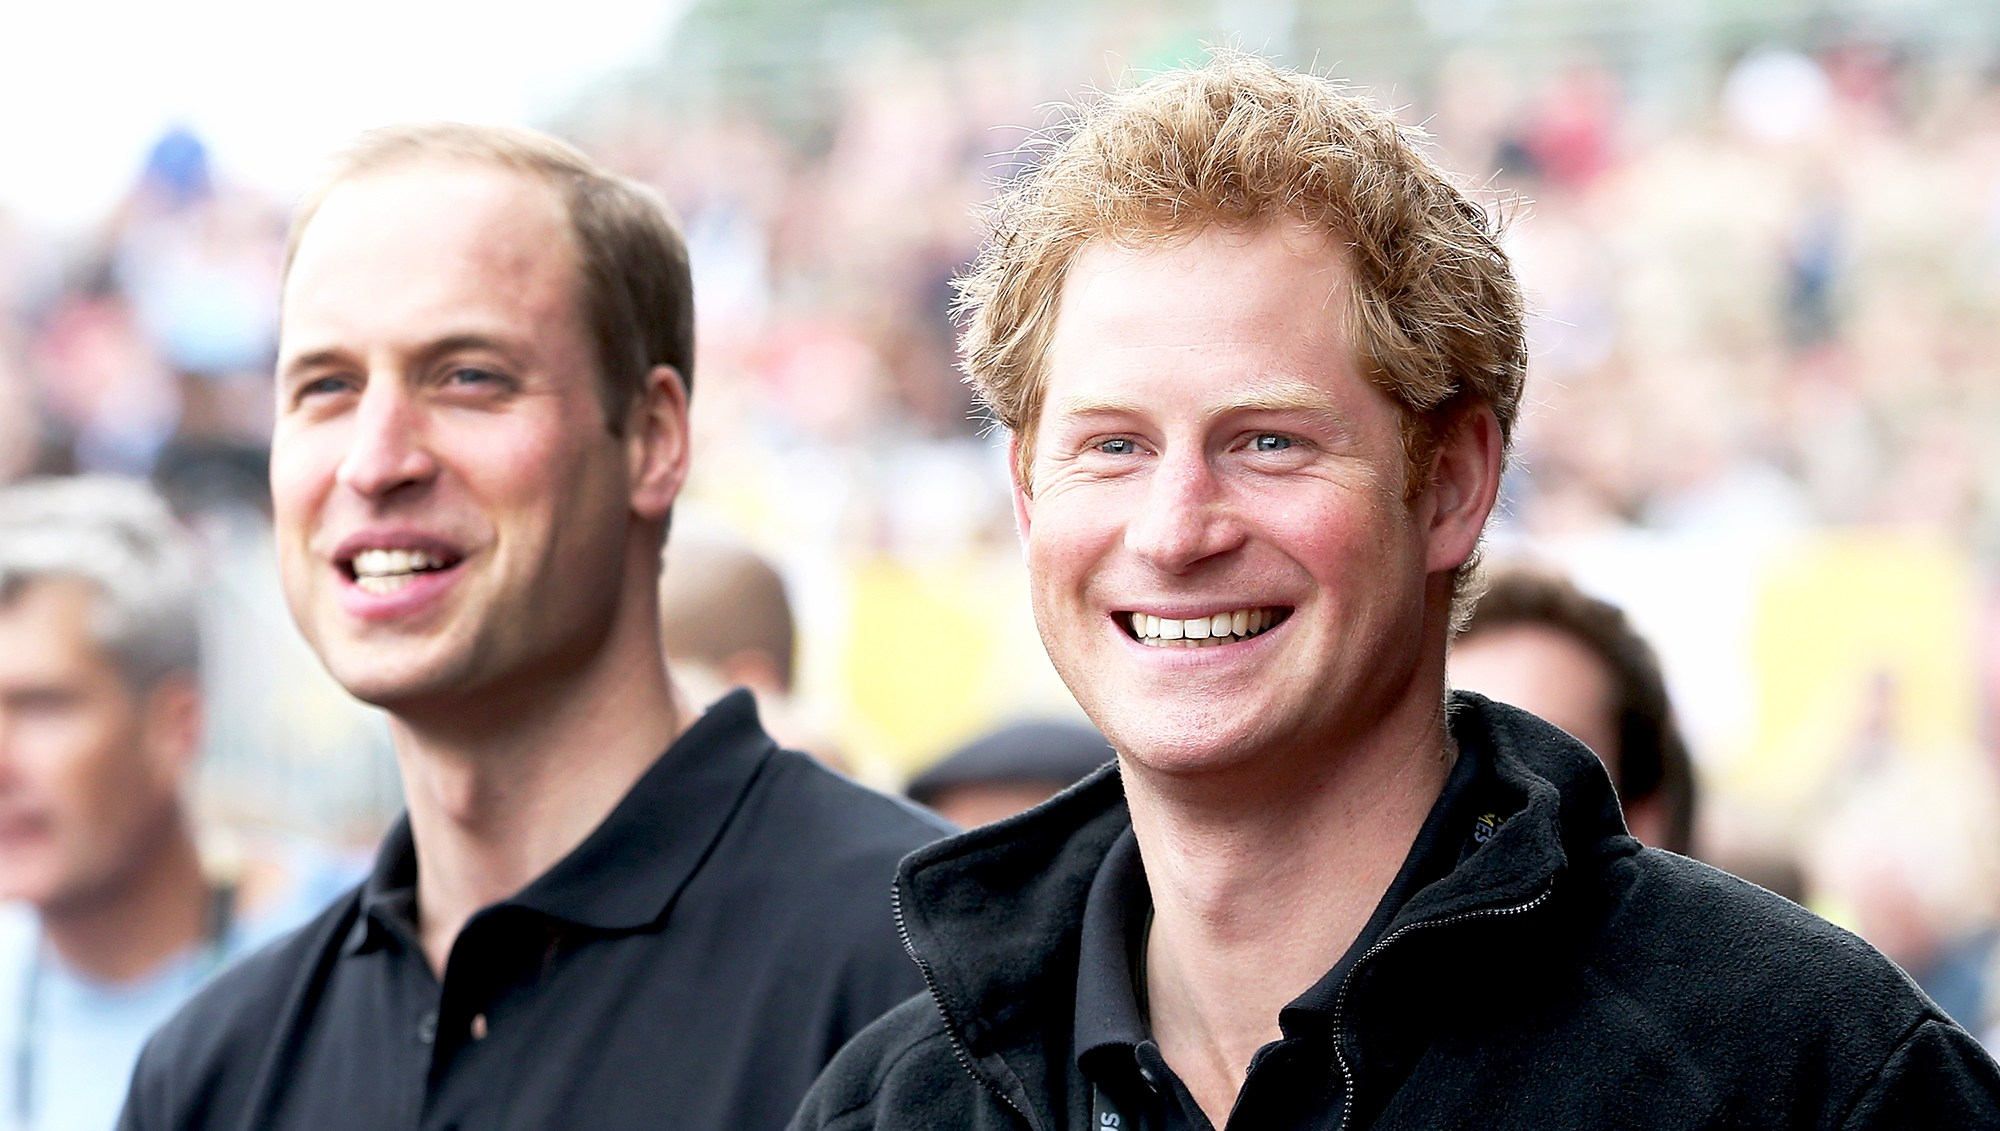 Prince William, Duke of Cambridge and his brother Prince Harry cheers the athletes during the Invictus Games athletics at Lee Valley in London, England.